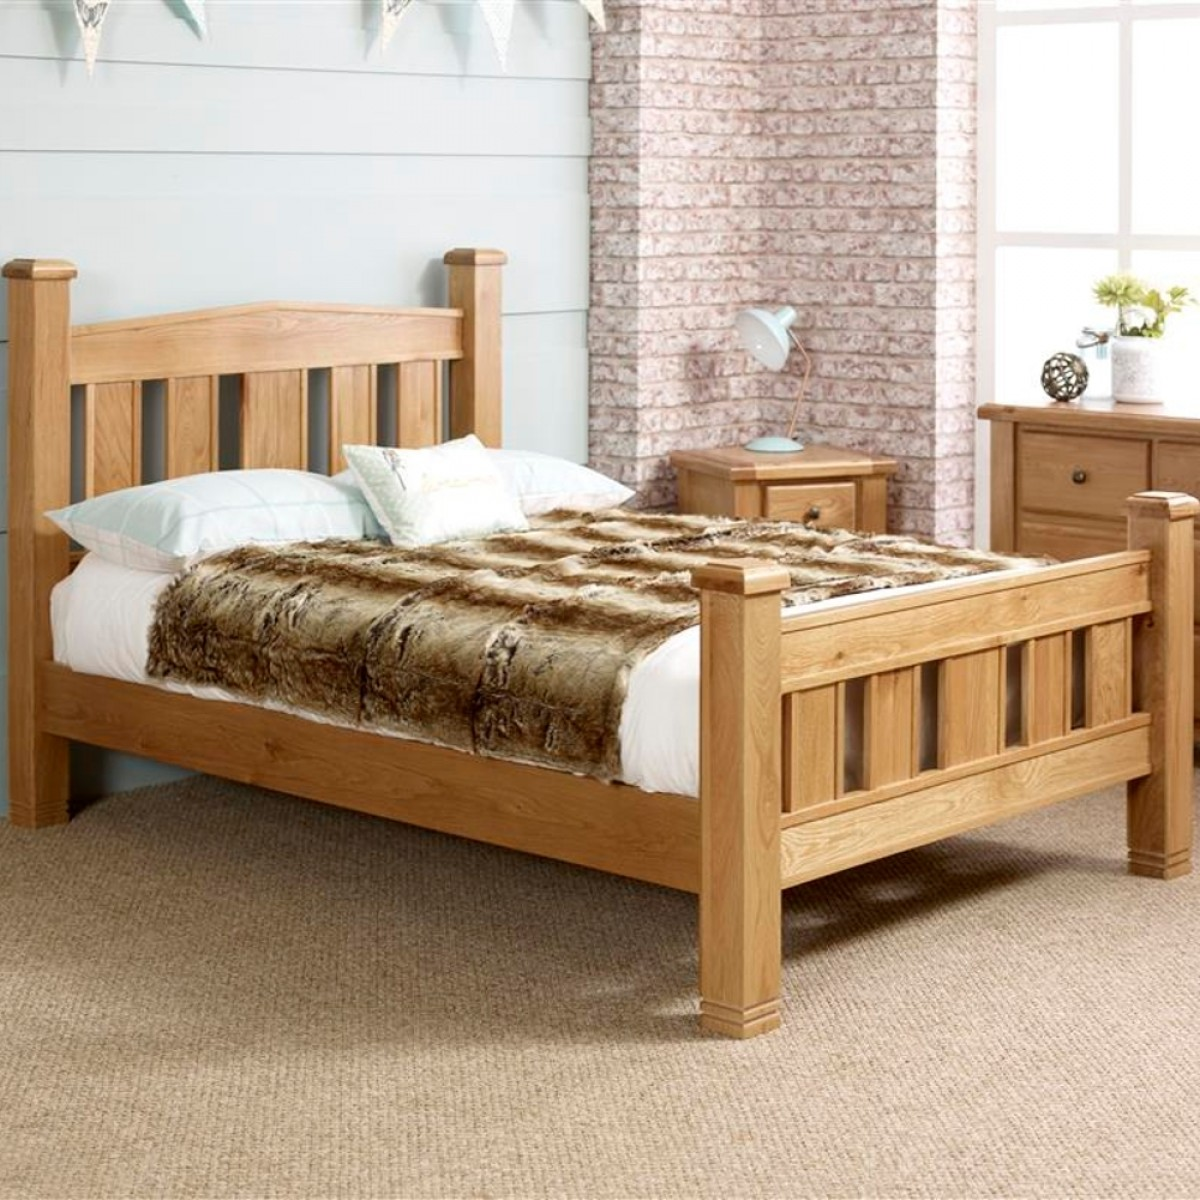 Woodstock Oak Wooden Bed